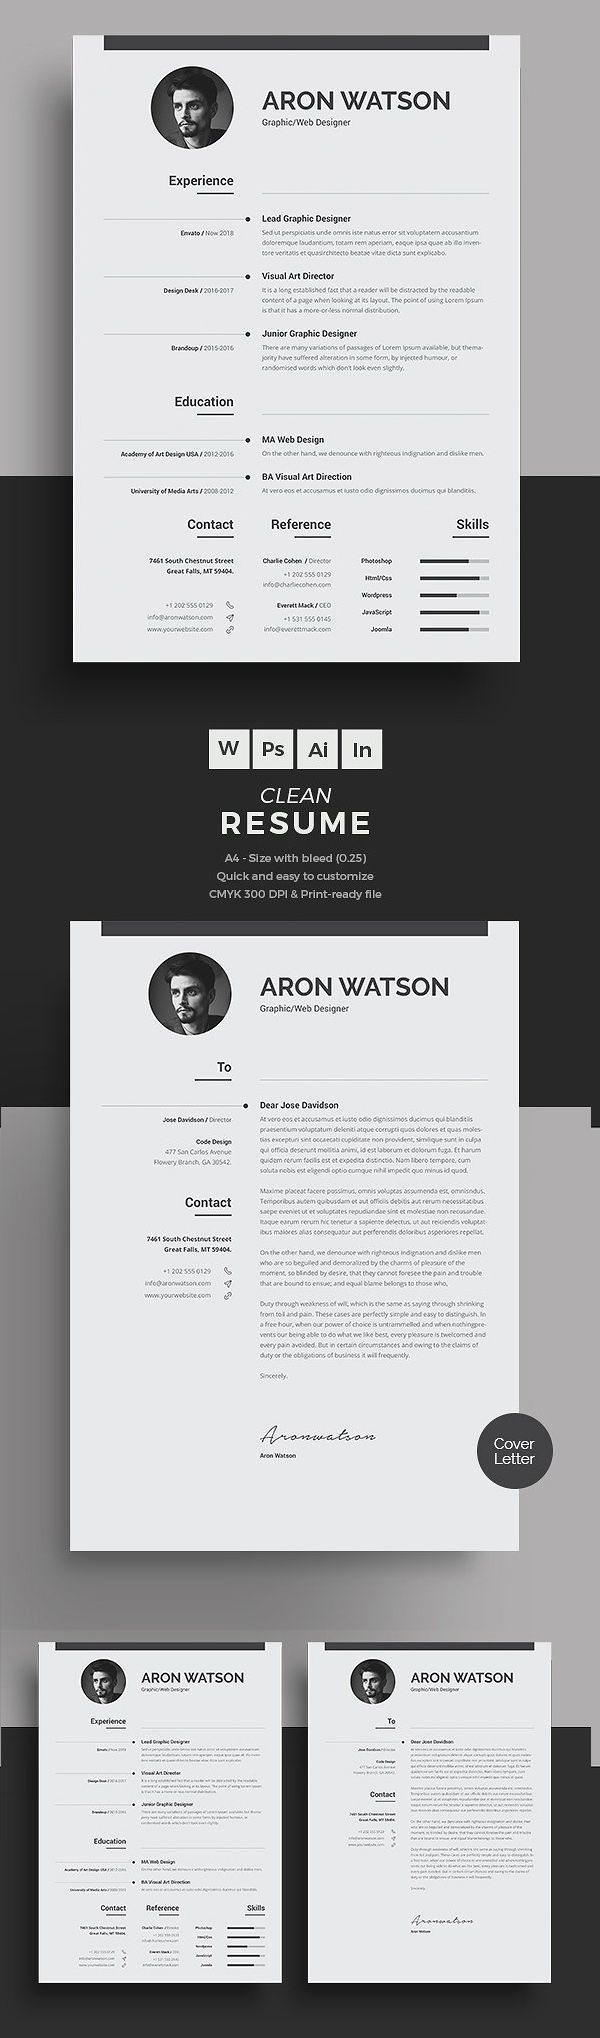 new professional cv resume templates with cover letter design graphic design junction - Resume Cover Letter Word Template